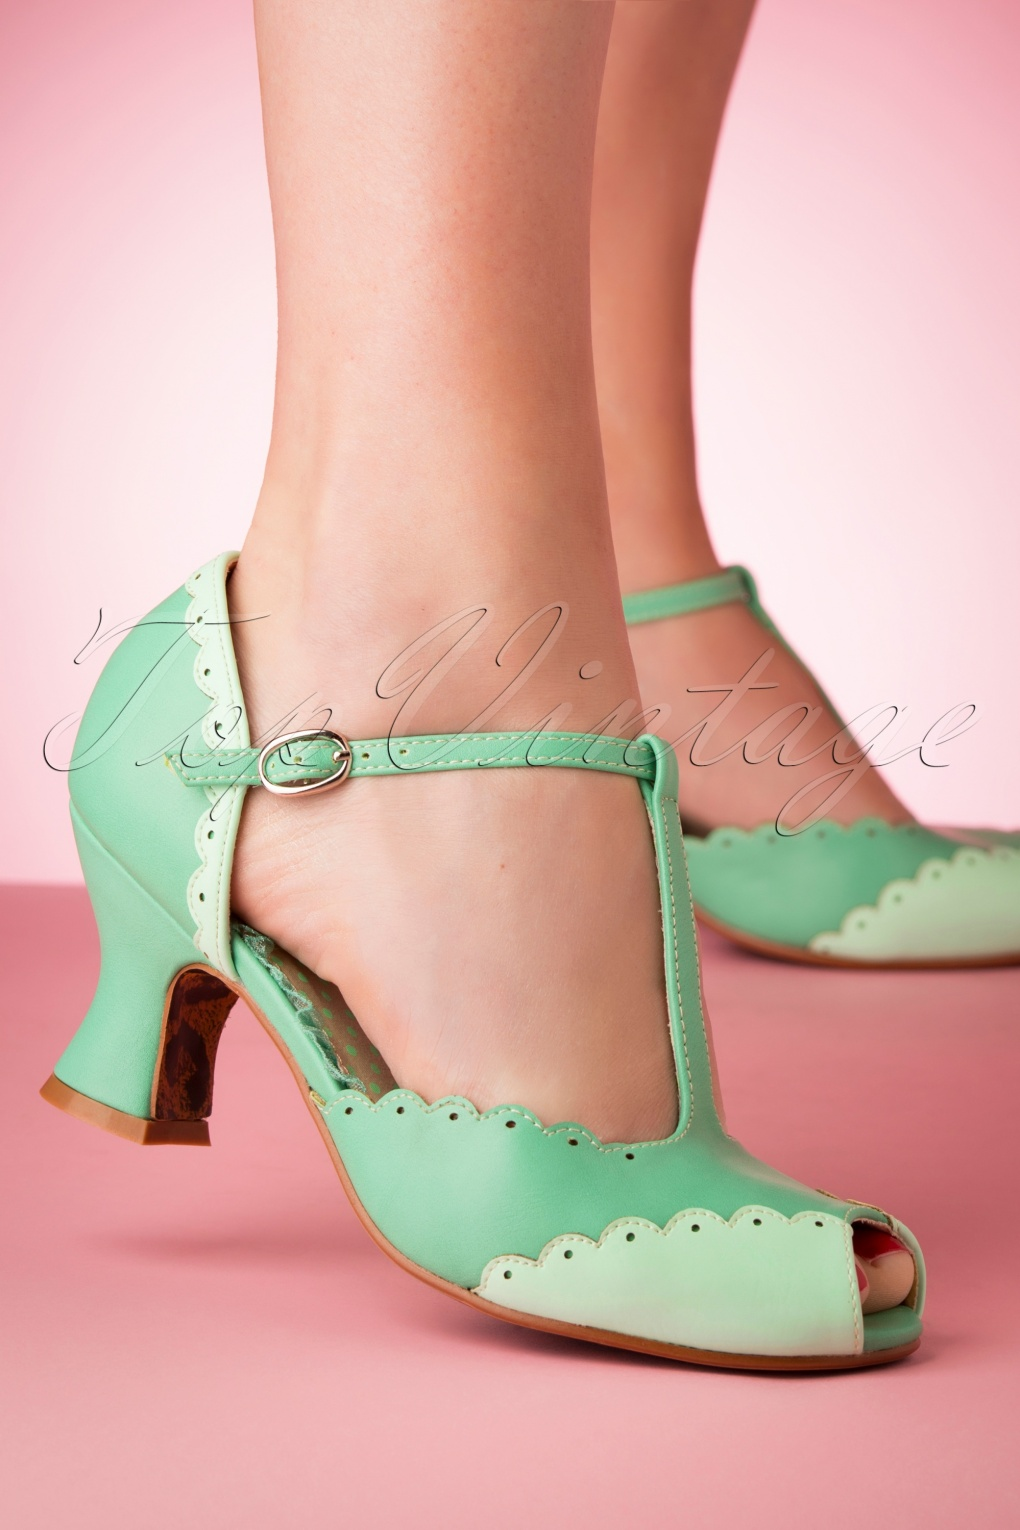 Pin Up Shoes- Heels, Pumps & Flats 50s Carlie T-Strap Pumps in Turquoise �60.39 AT vintagedancer.com